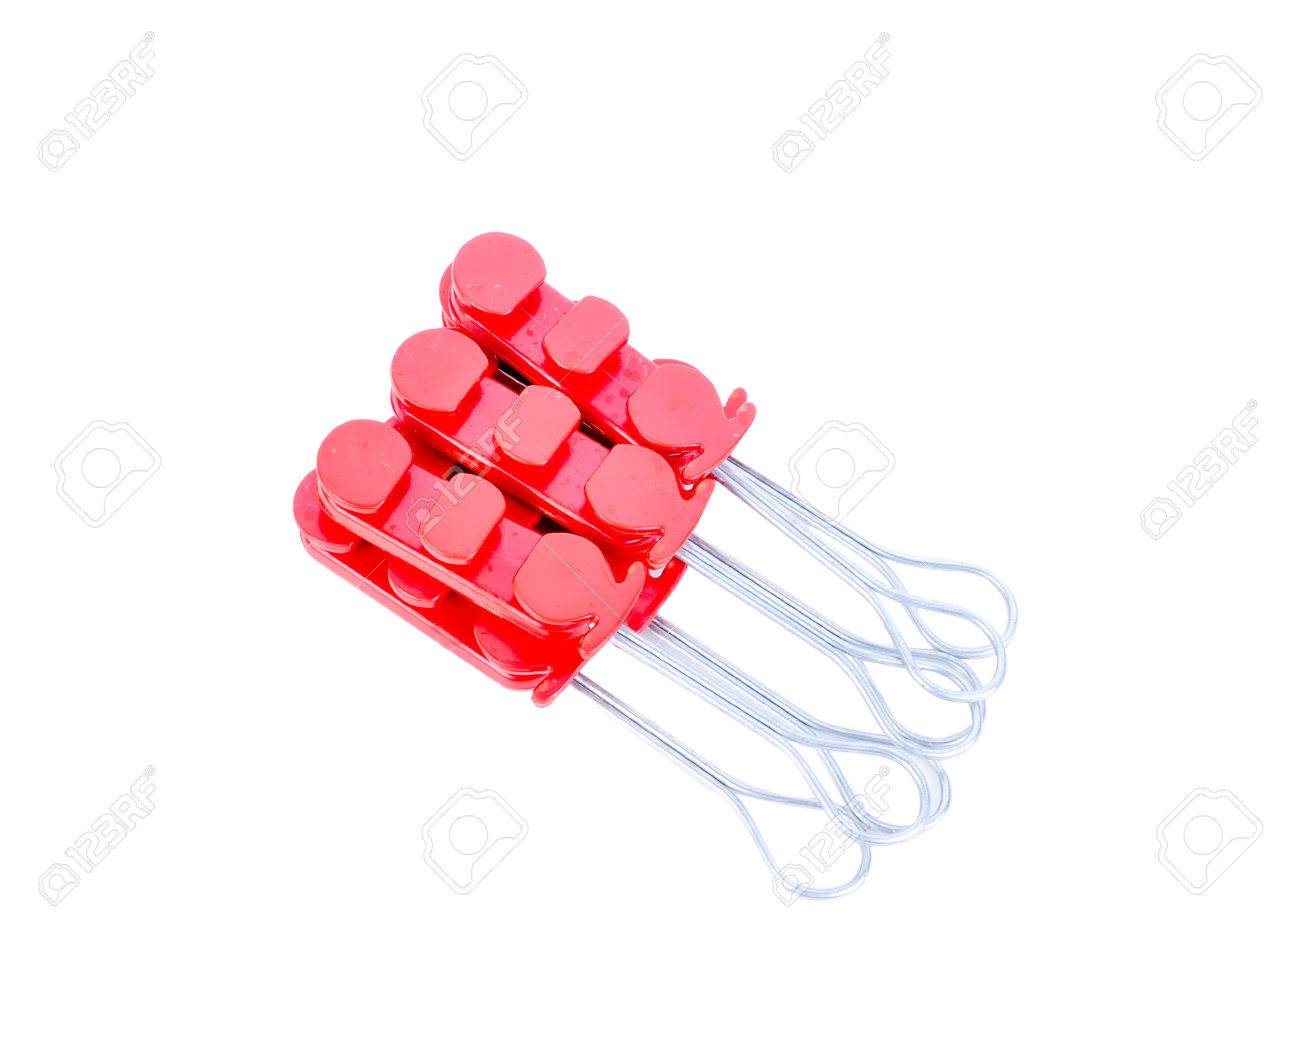 Drop Wire Clamp Stock Photo, Picture And Royalty Free Image. Image ...